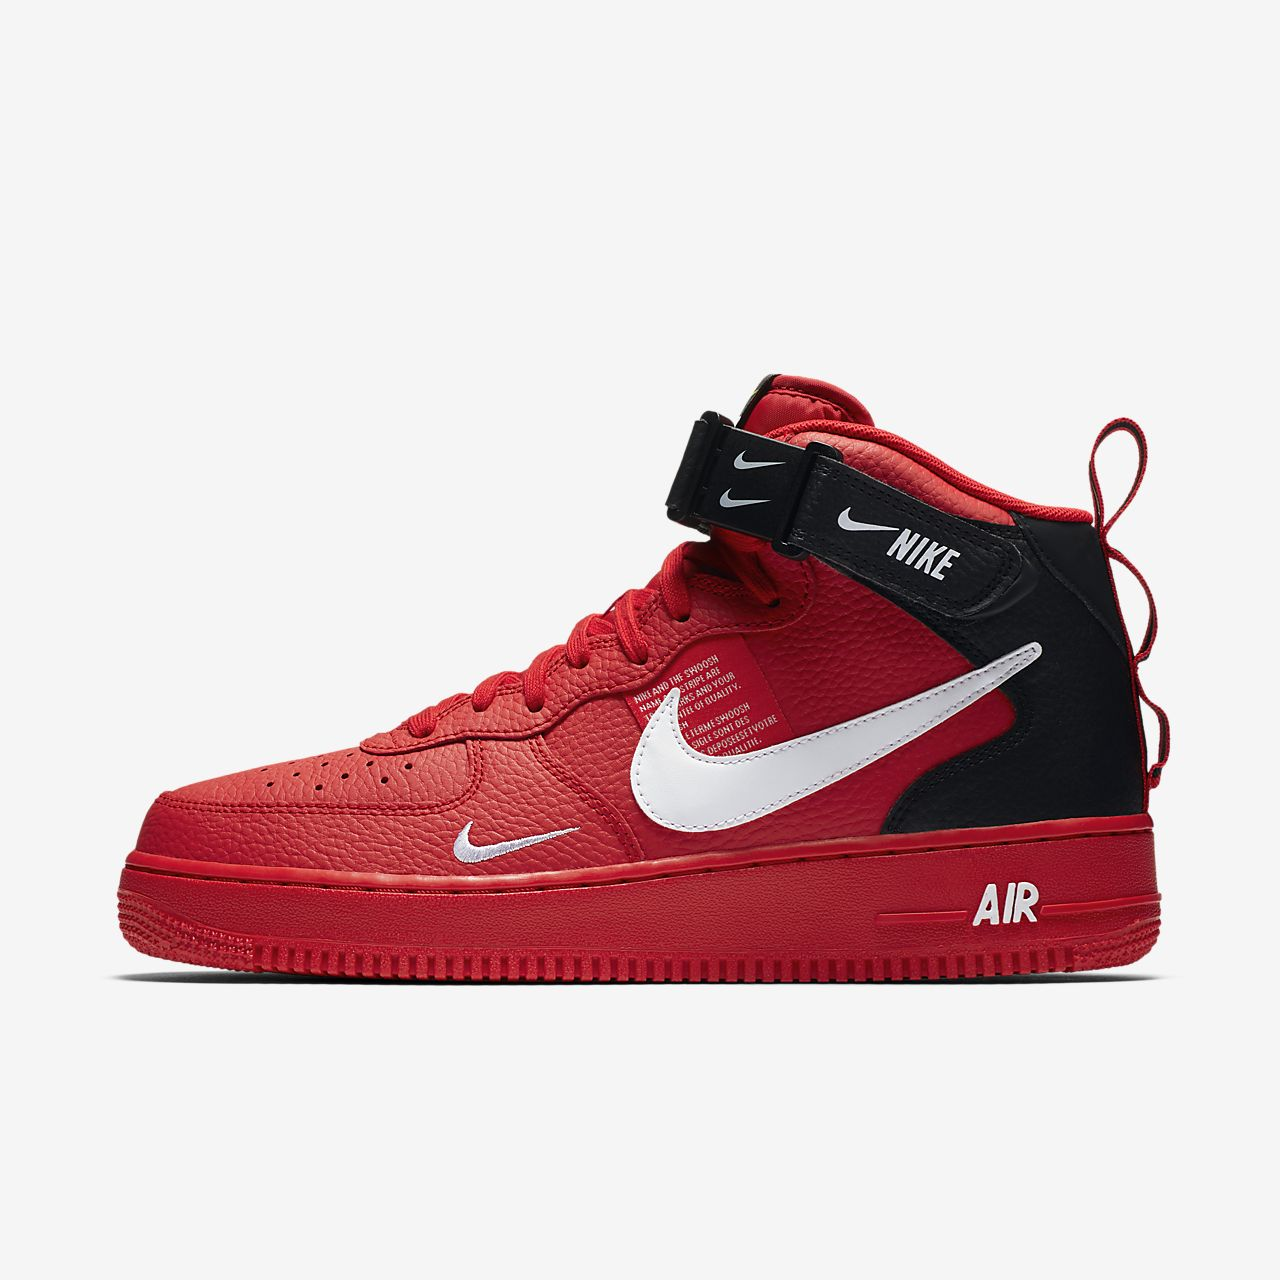 sports shoes e5f95 70a1f Nike Air Force 1 07 Mid LV8